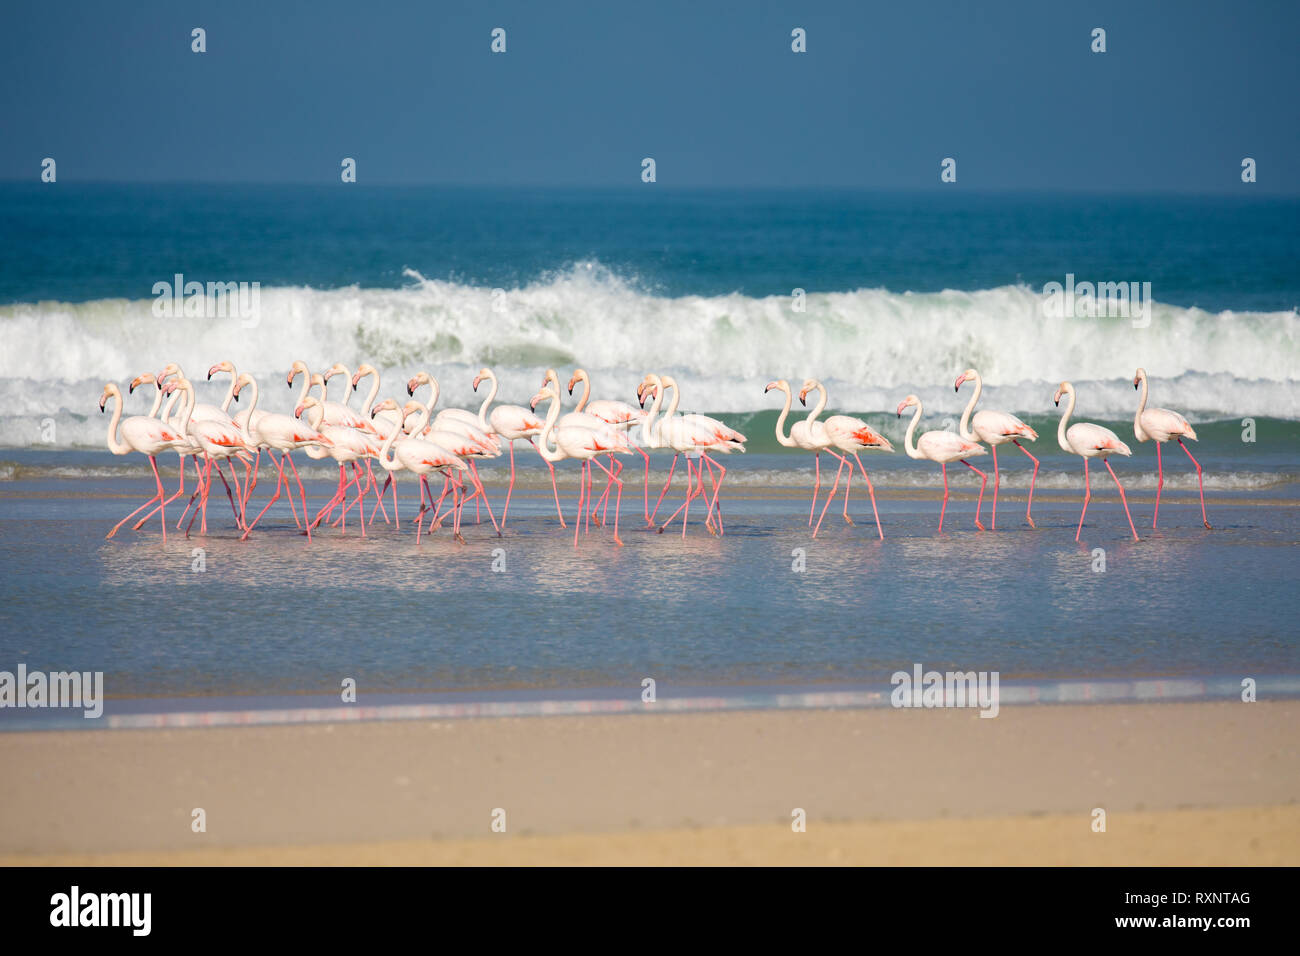 swarm of standing Flamingos in the De Mond coastal nature reserve, South Africa, with blue Indian Ocean waves in the background - Stock Image